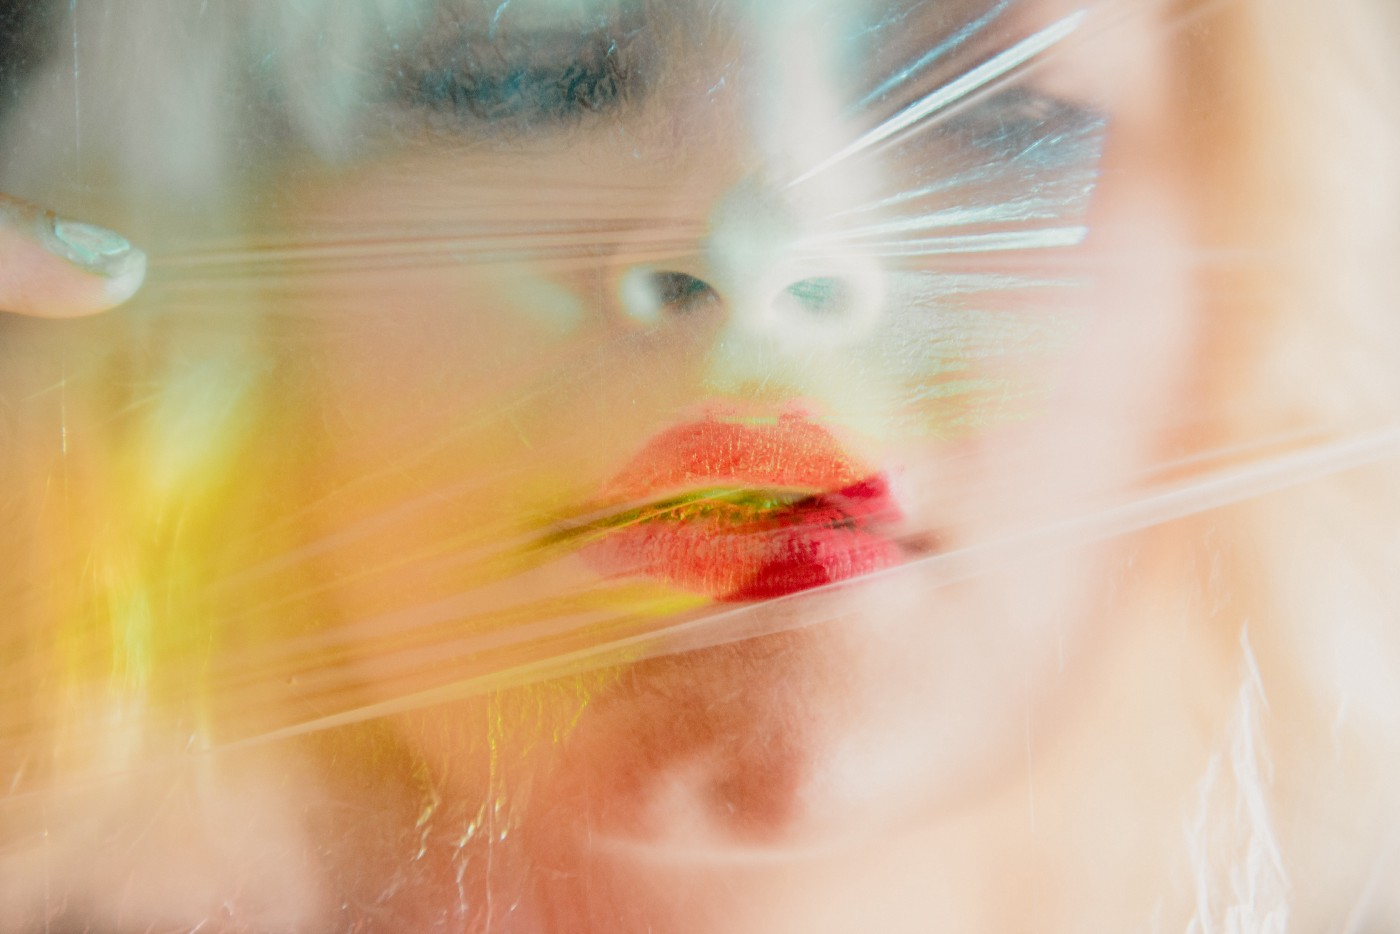 Blond woman behind a sheet of plastic, lipstick smeared.